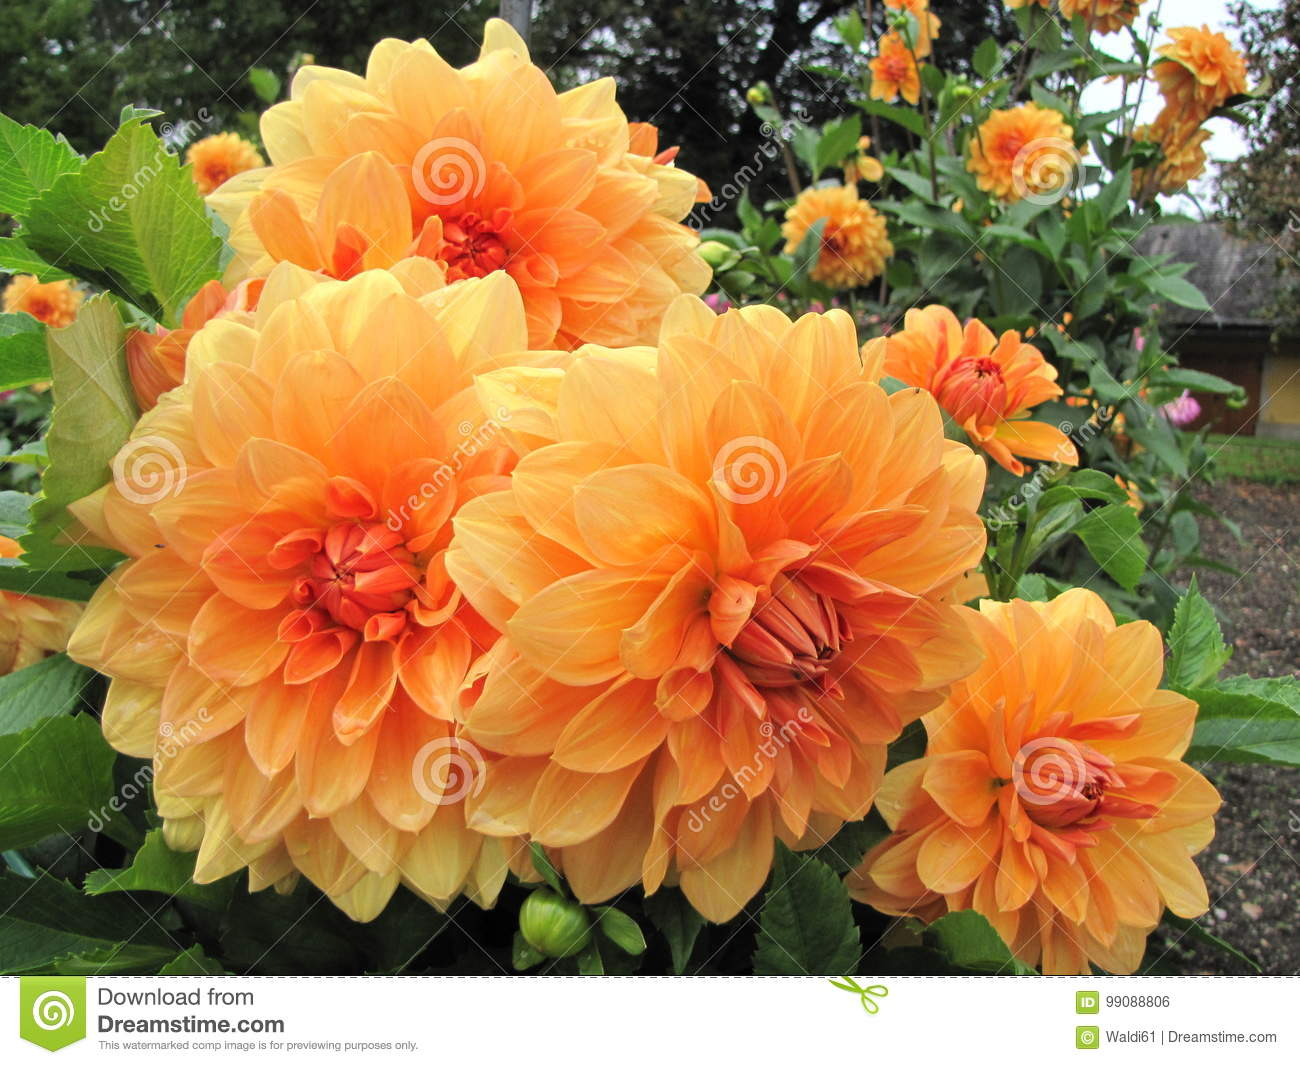 Dahlias magnificent and very beautiful flowers stock photo image download dahlias magnificent and very beautiful flowers stock photo image of dahl have izmirmasajfo